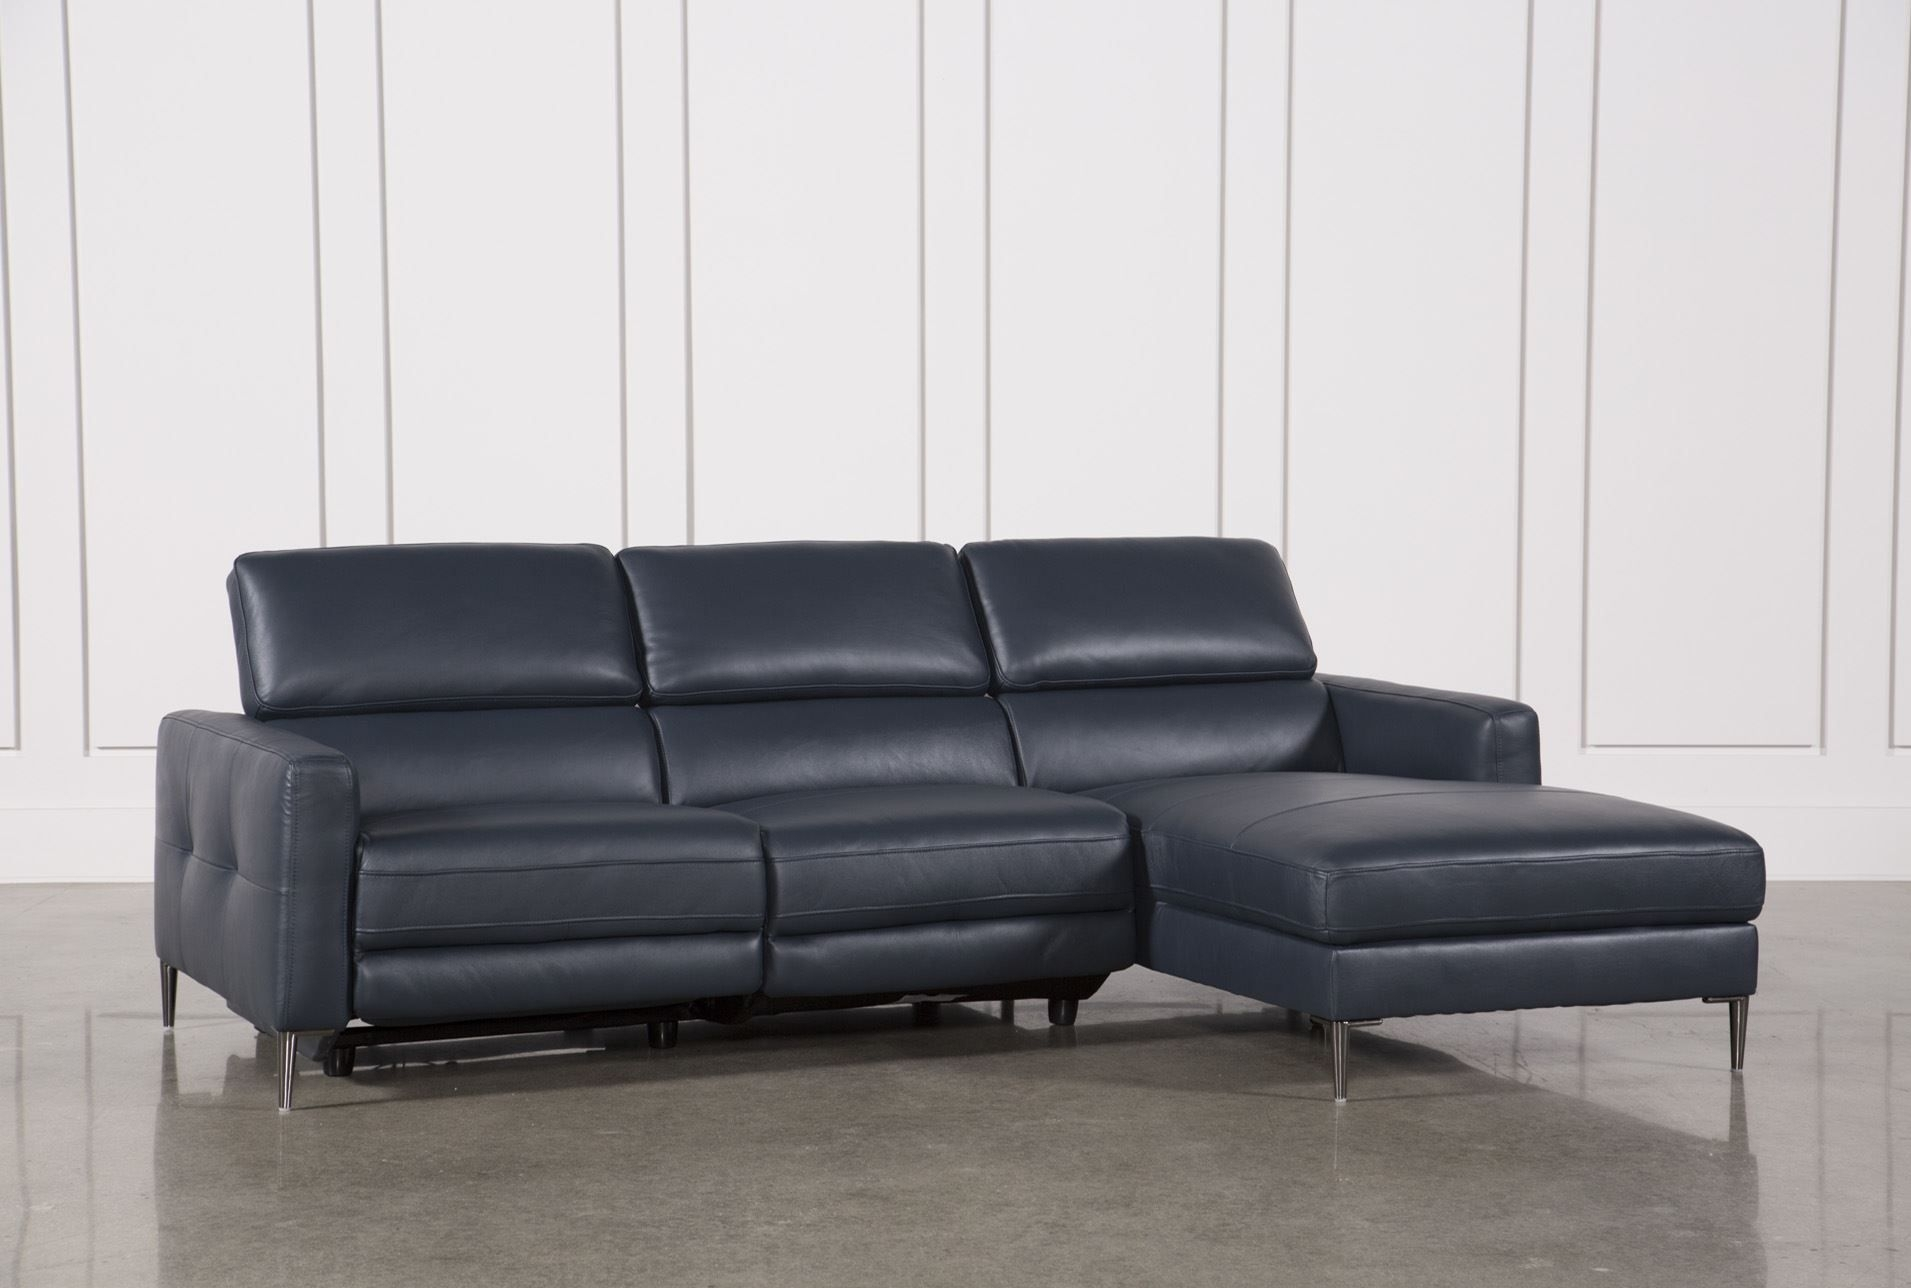 Tara Blue 2 Piece Right Facing Chaise Sofa | Chaise Sofa, Living Inside Tess 2 Piece Power Reclining Sectionals With Laf Chaise (Image 20 of 25)